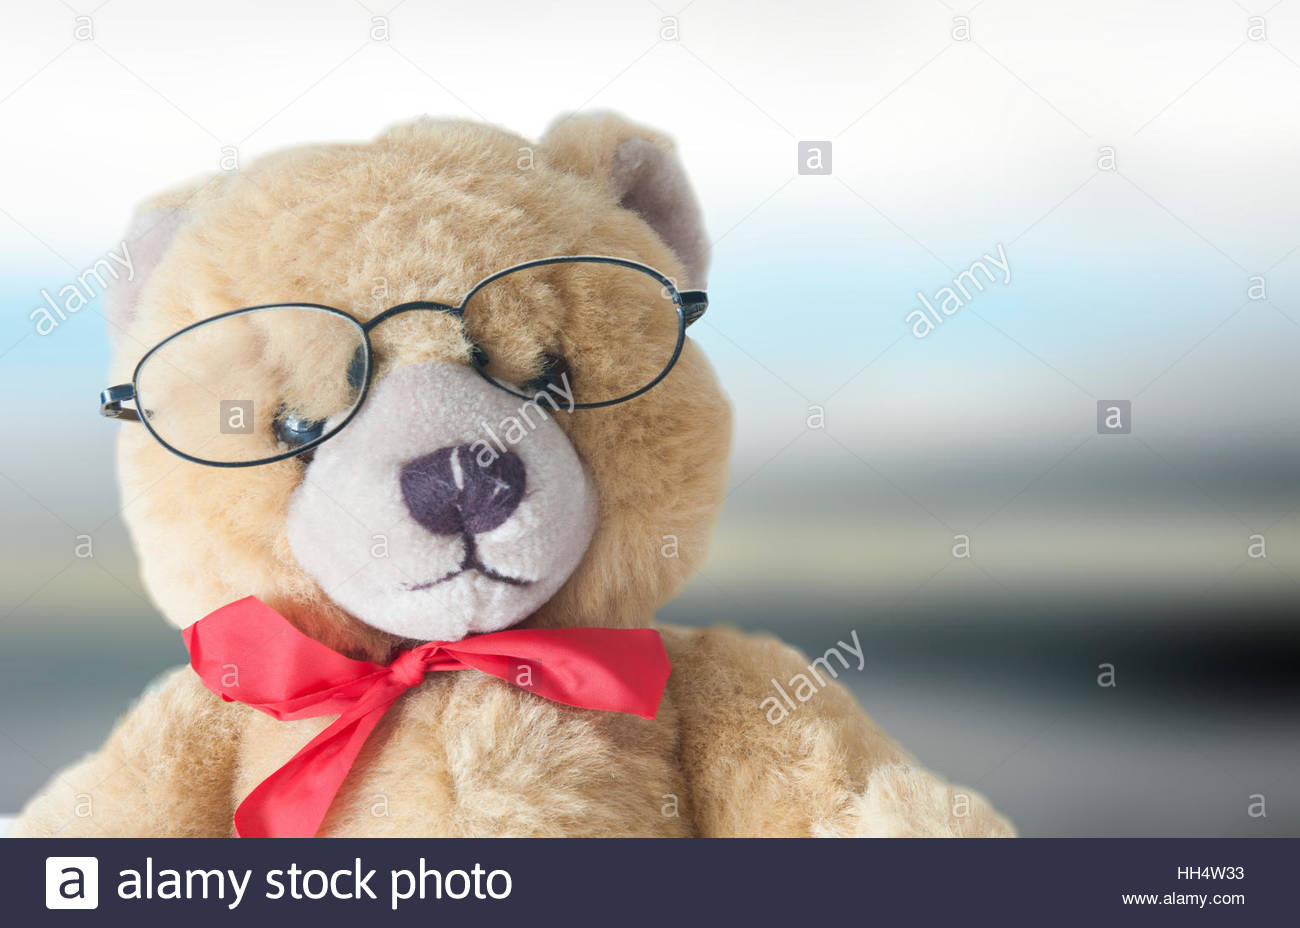 Teddy bear wearing glasses with one lens missing Stock ...